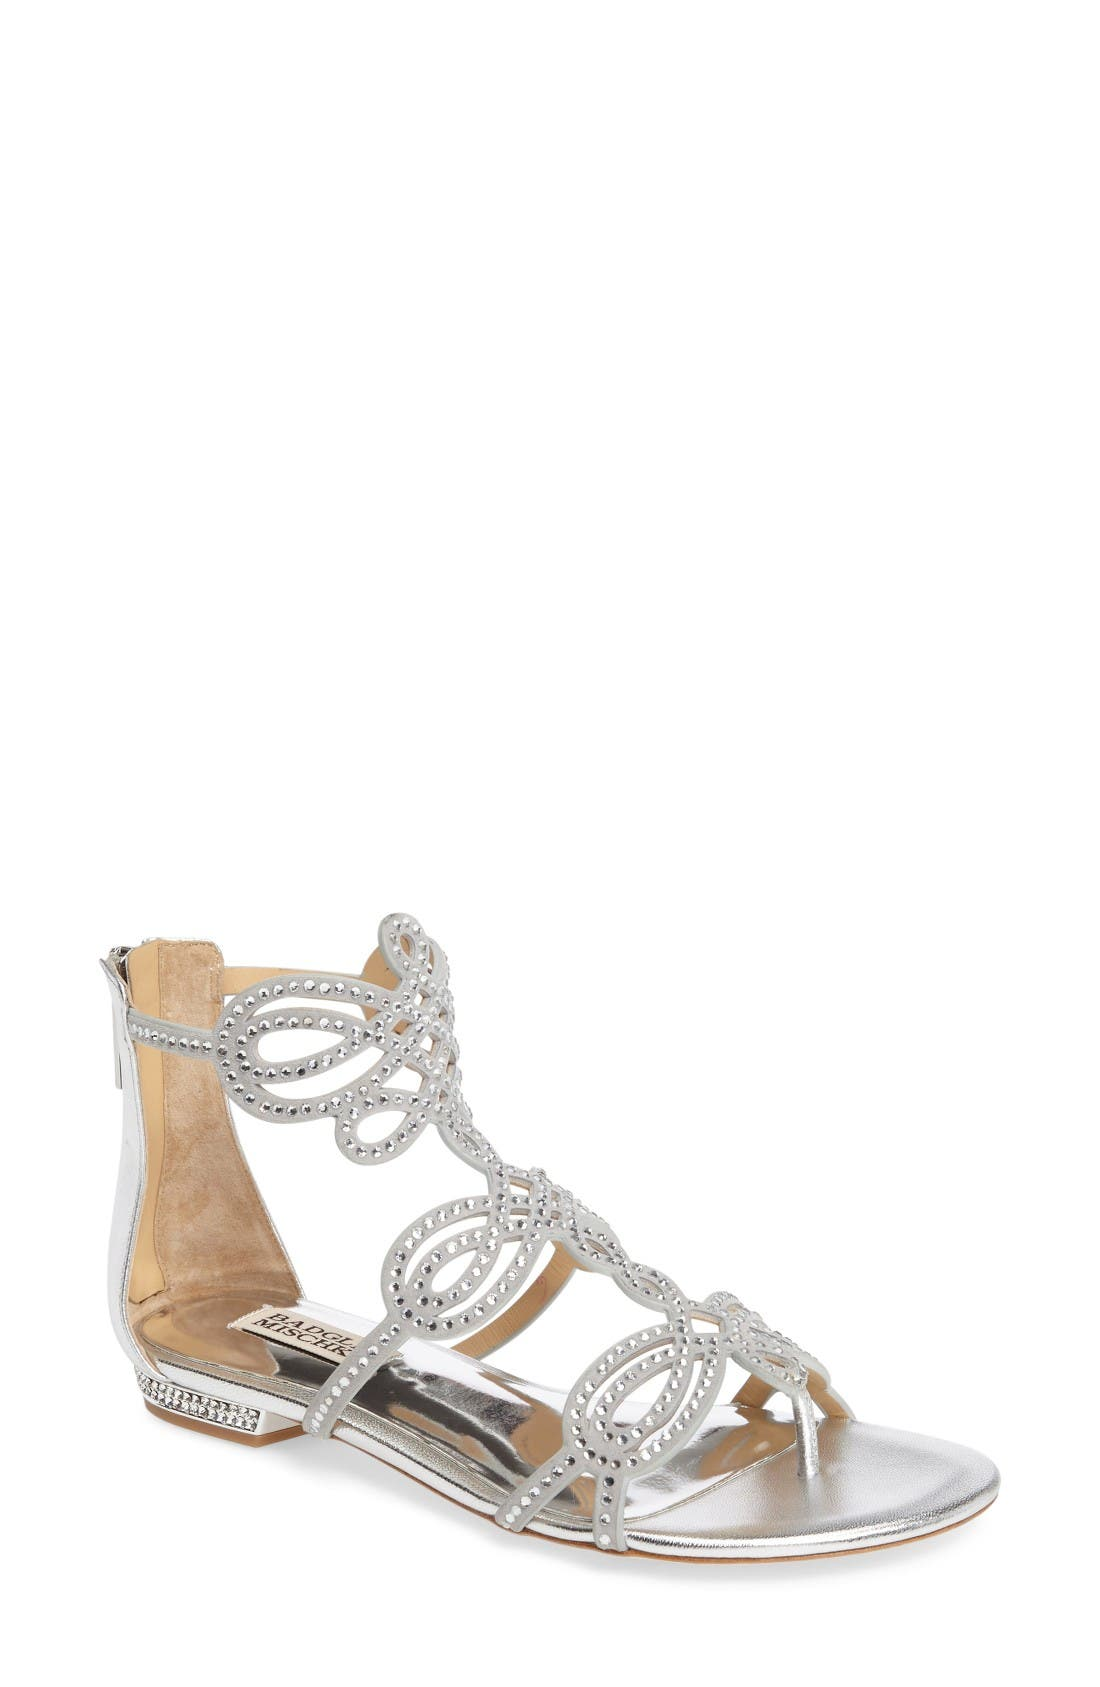 Badgley Mischka Tempe Embellished Sandal (Women)